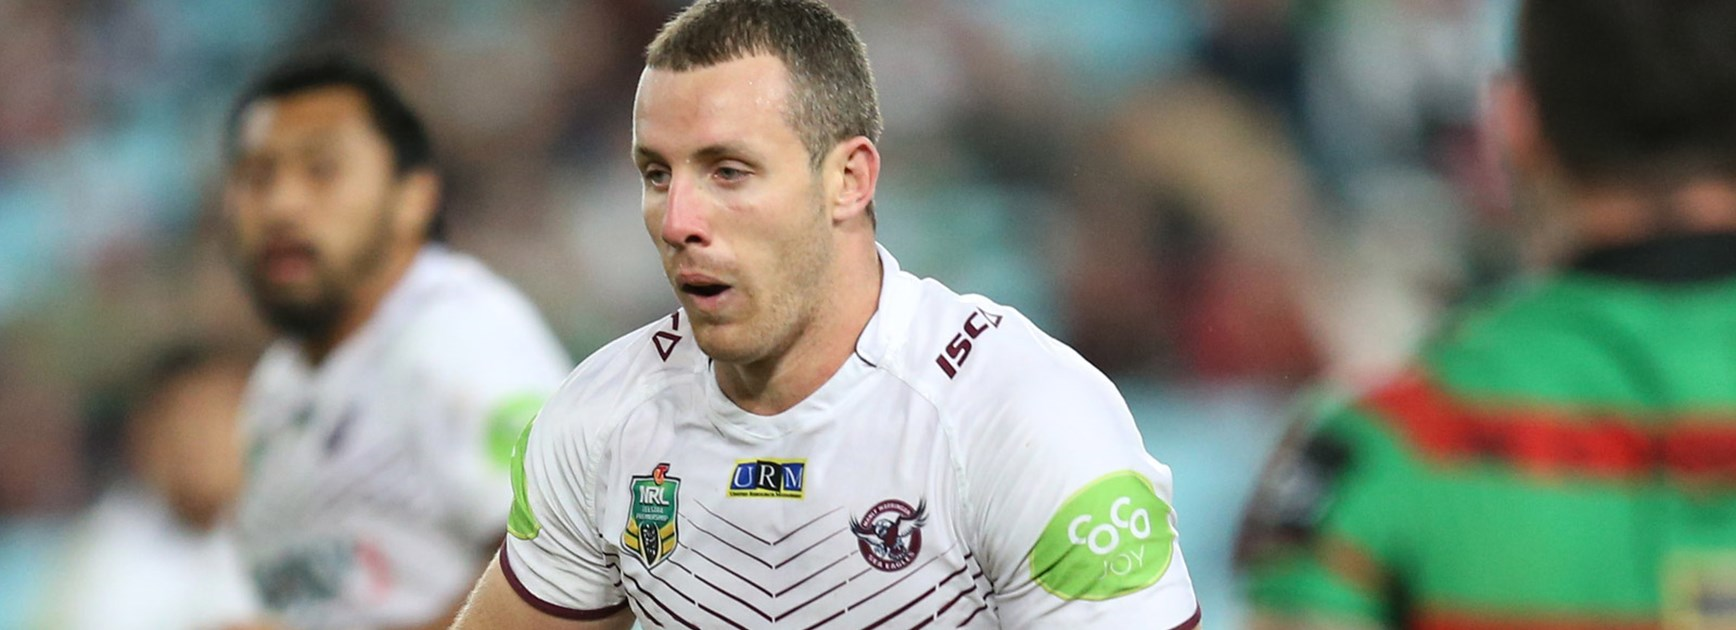 Sea Eagles prop James Hasson has signed a one-year deal with the Eels.